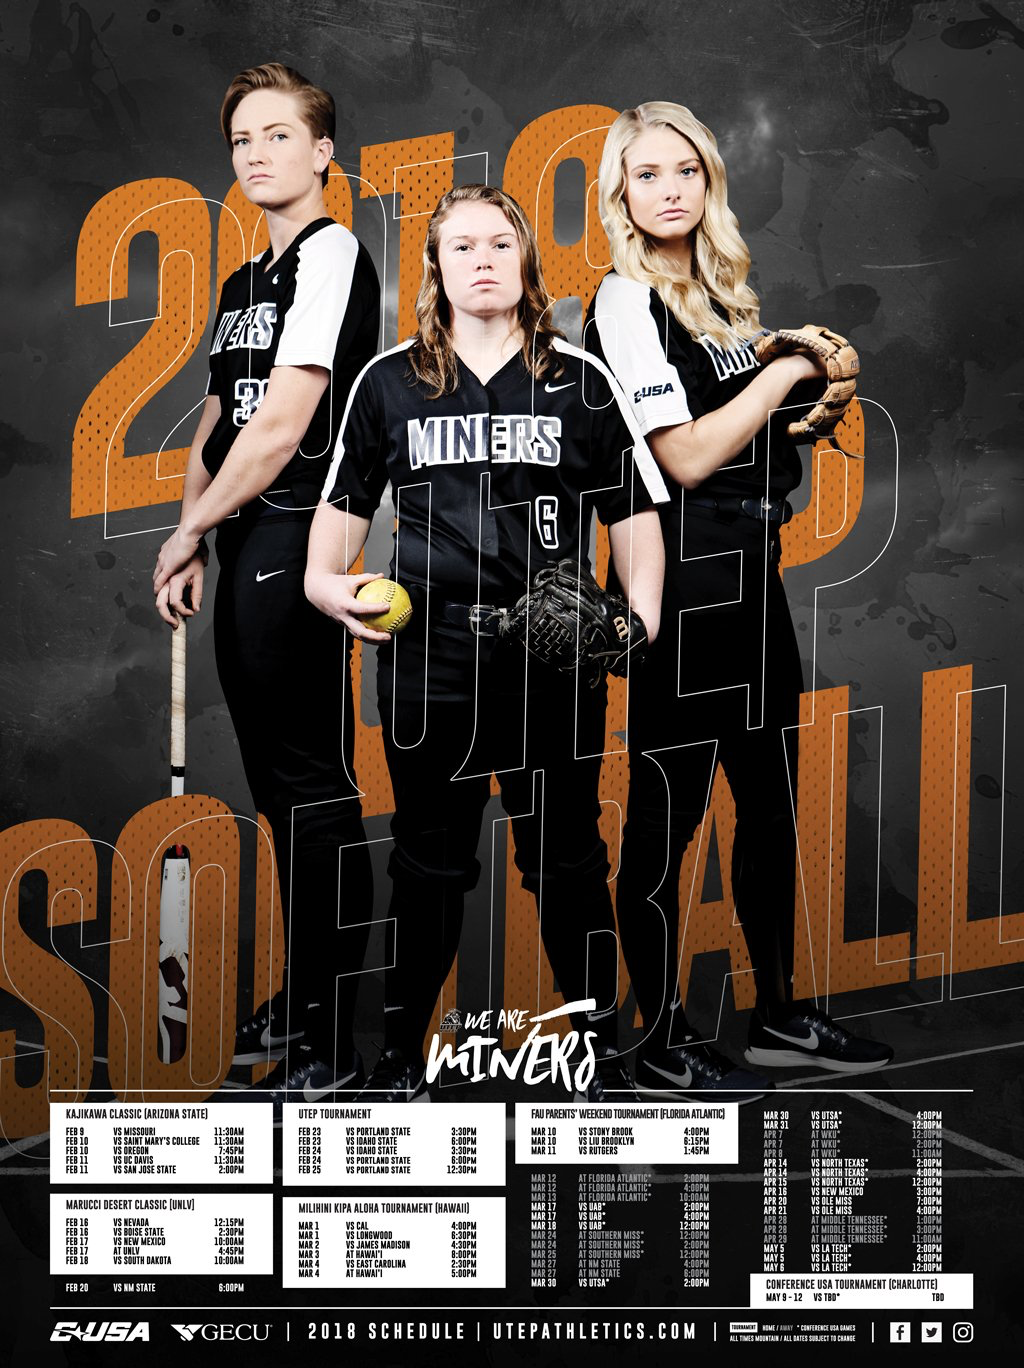 2018 Utep Softball Schedule Poster Sports Design Sports Graphics Softball Team